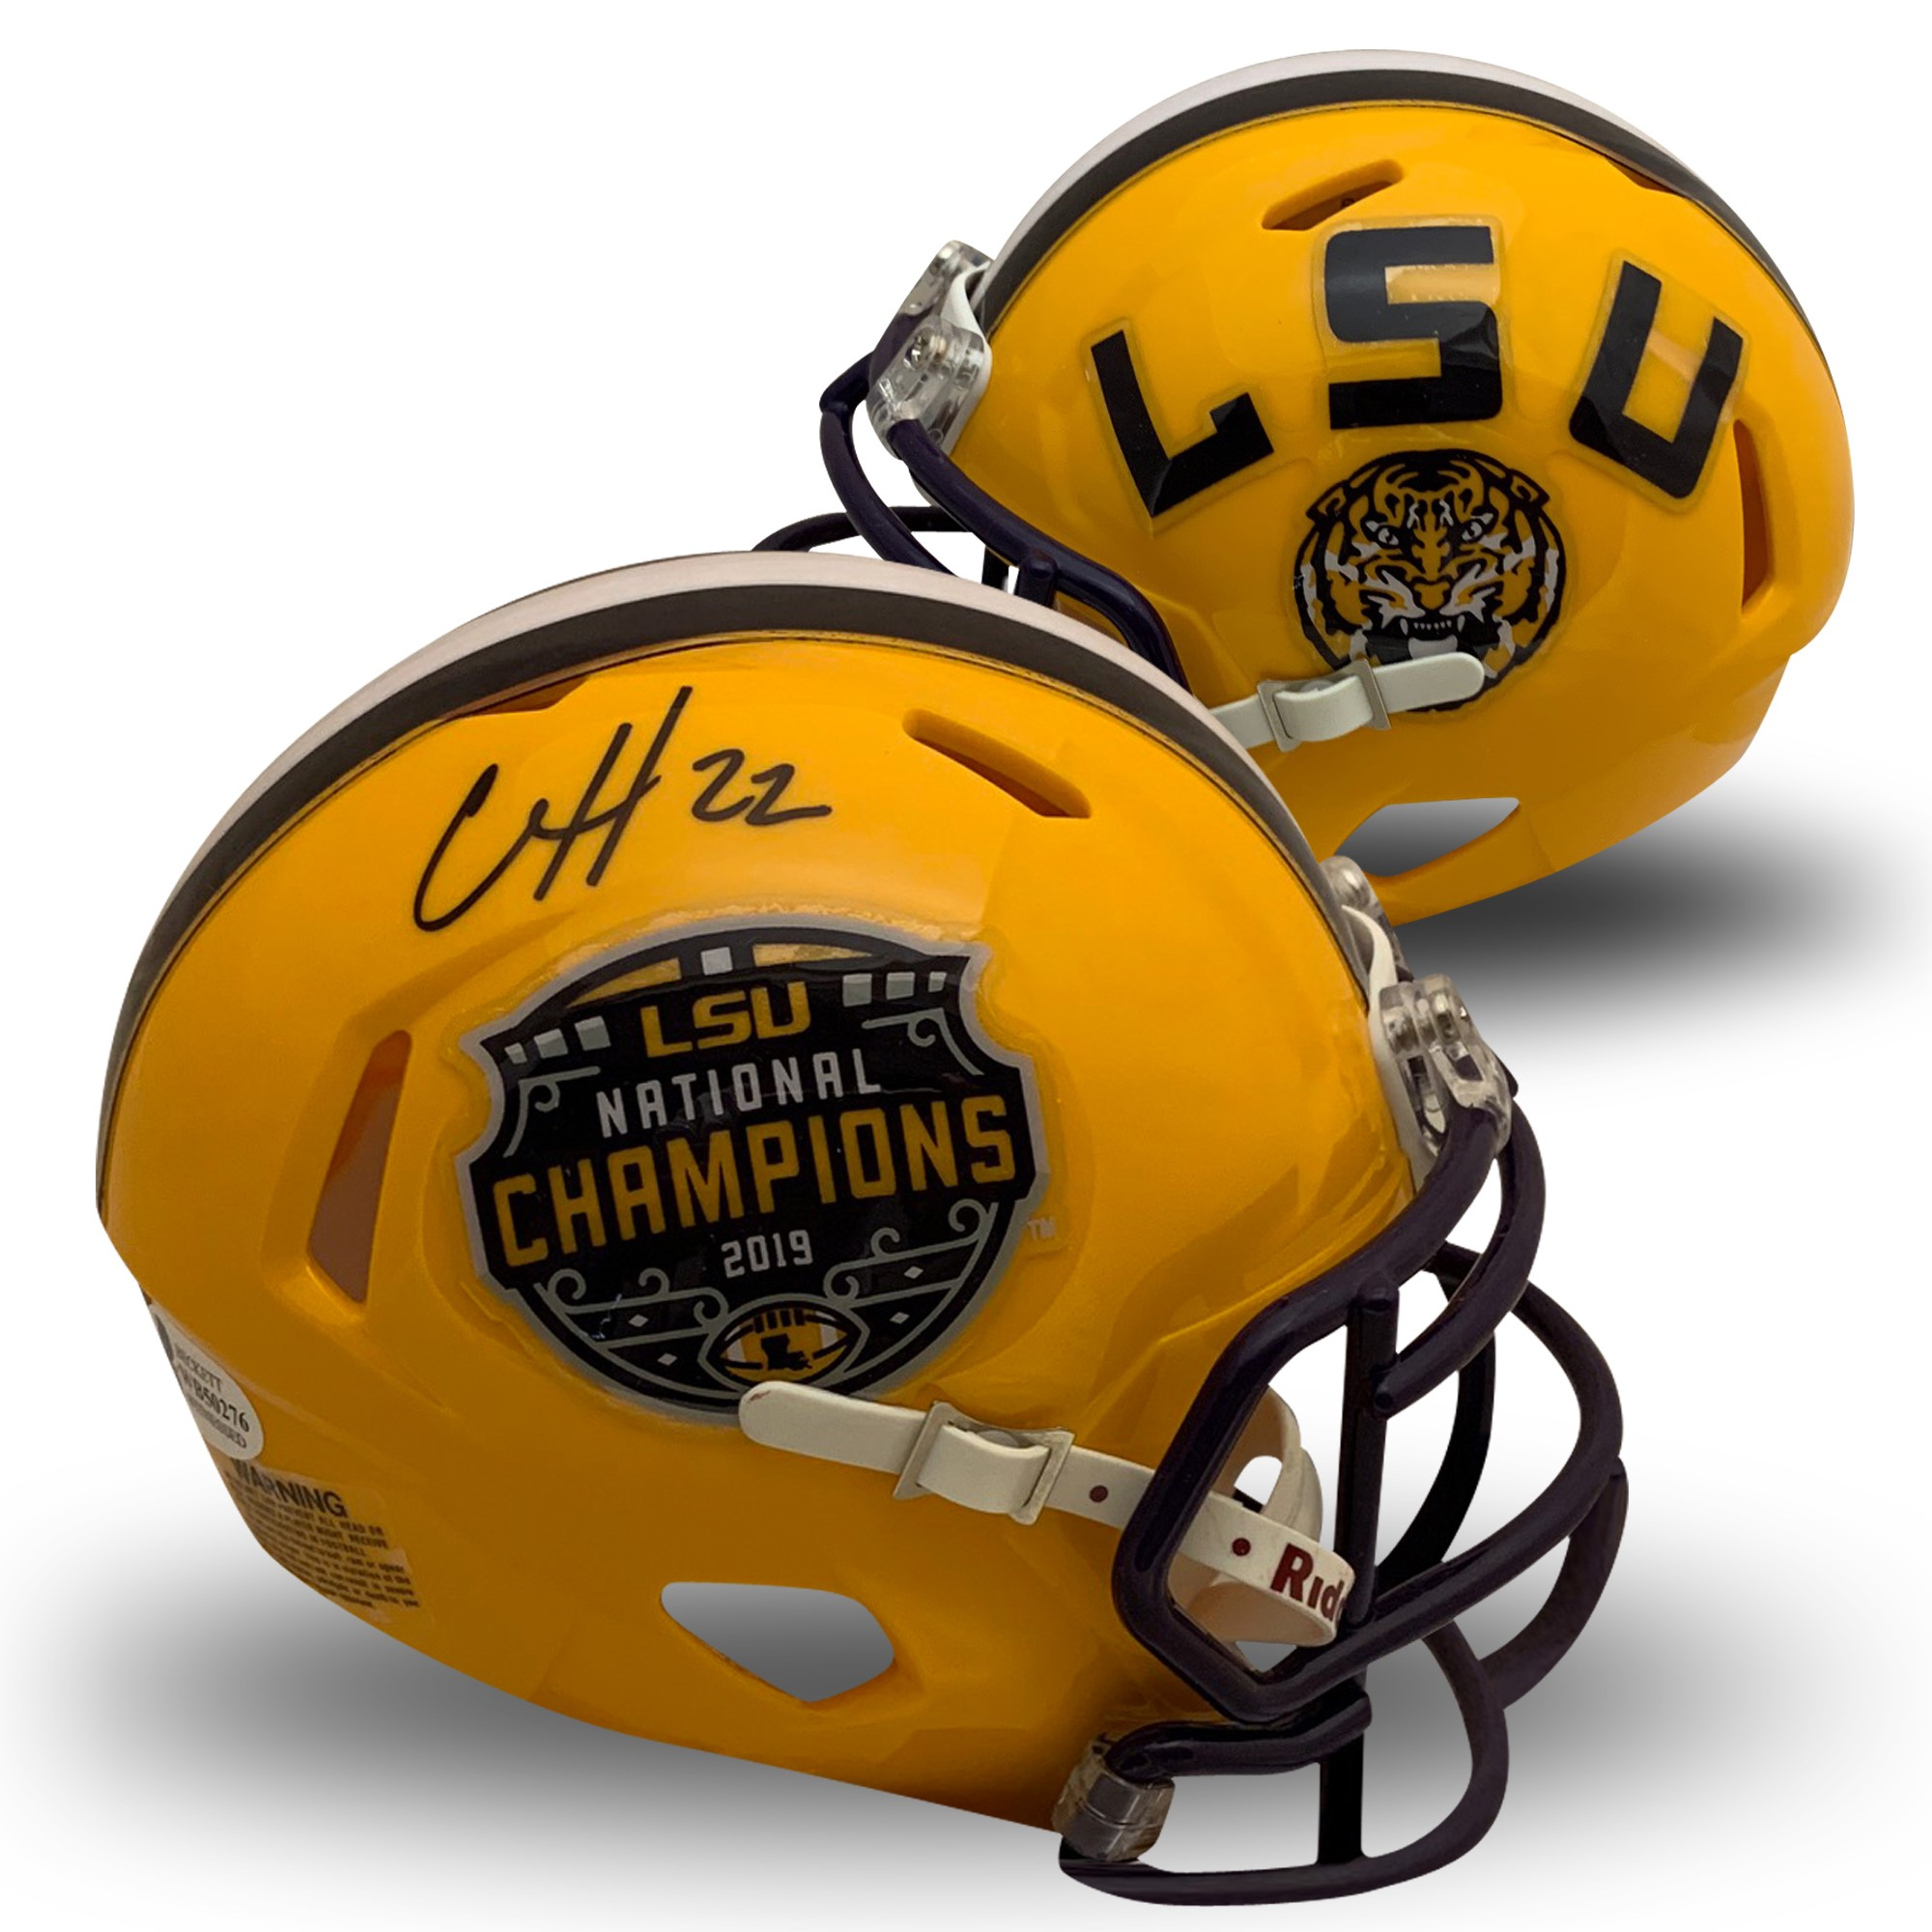 Clyde Edwards-Helaire Autographed LSU Tigers 2019 National Champions Signed Football Speed Mini Helmet Beckett BAS COA